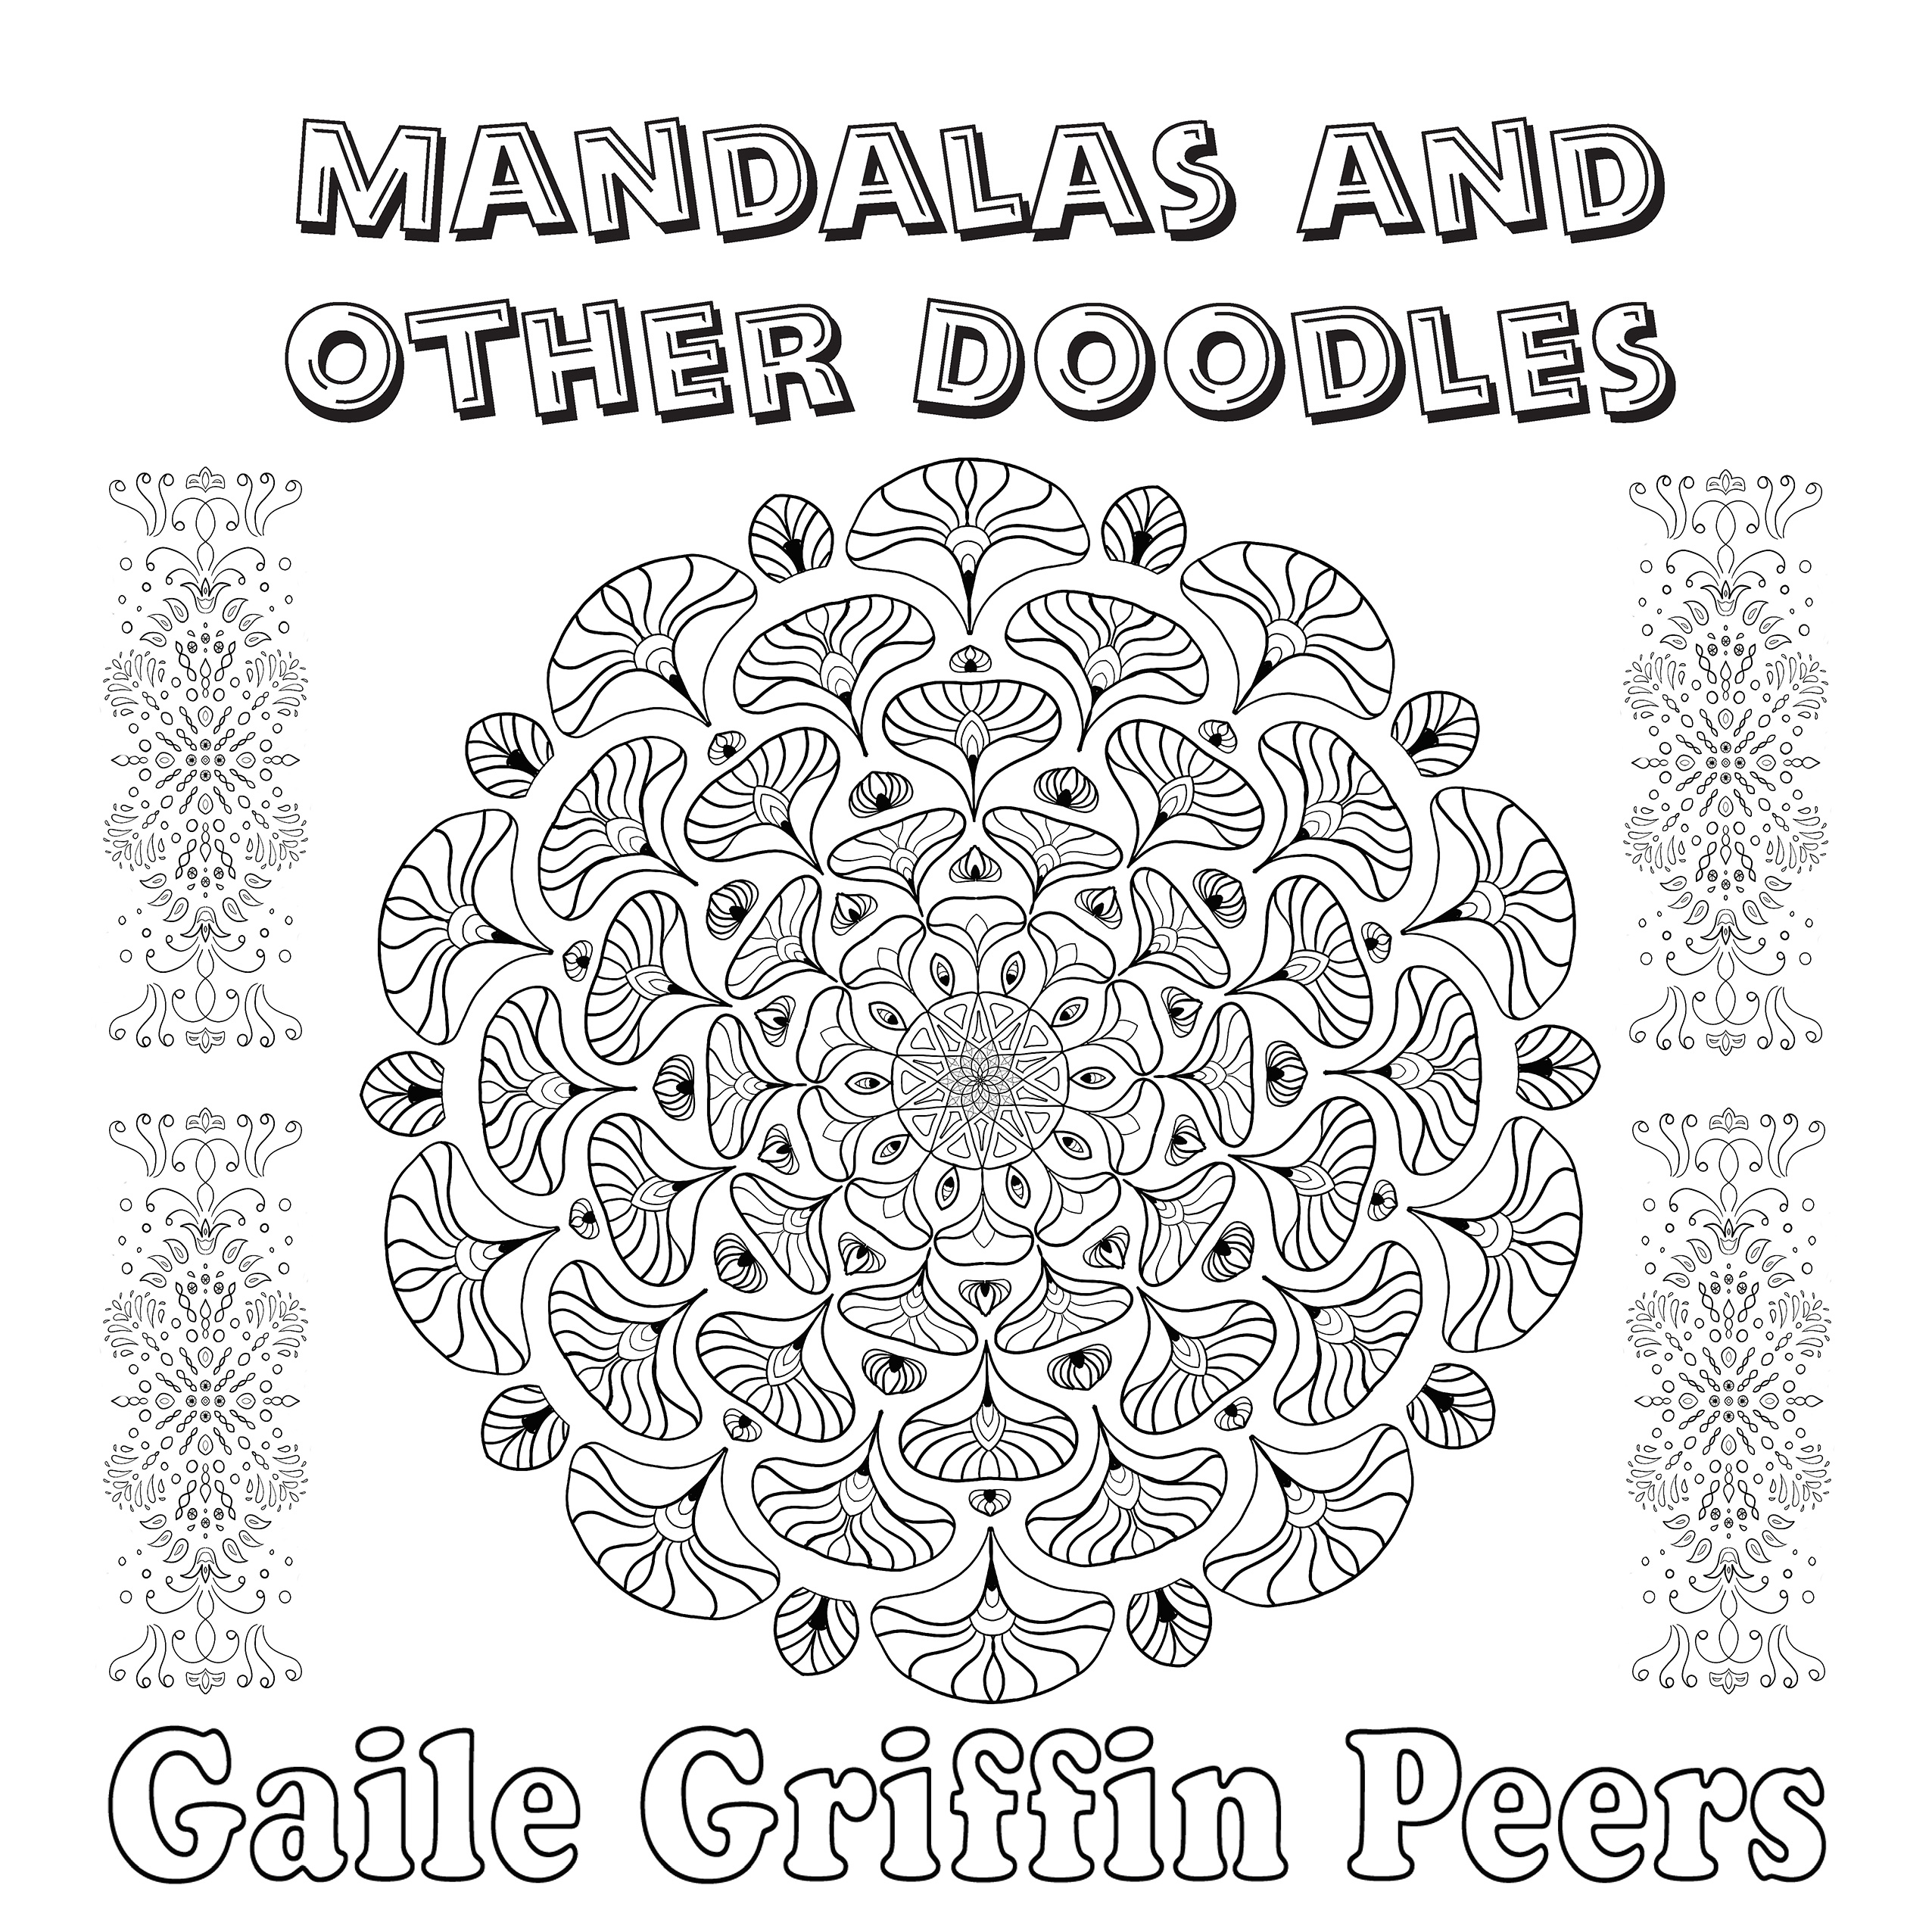 Mandalas and Other Doodles is out